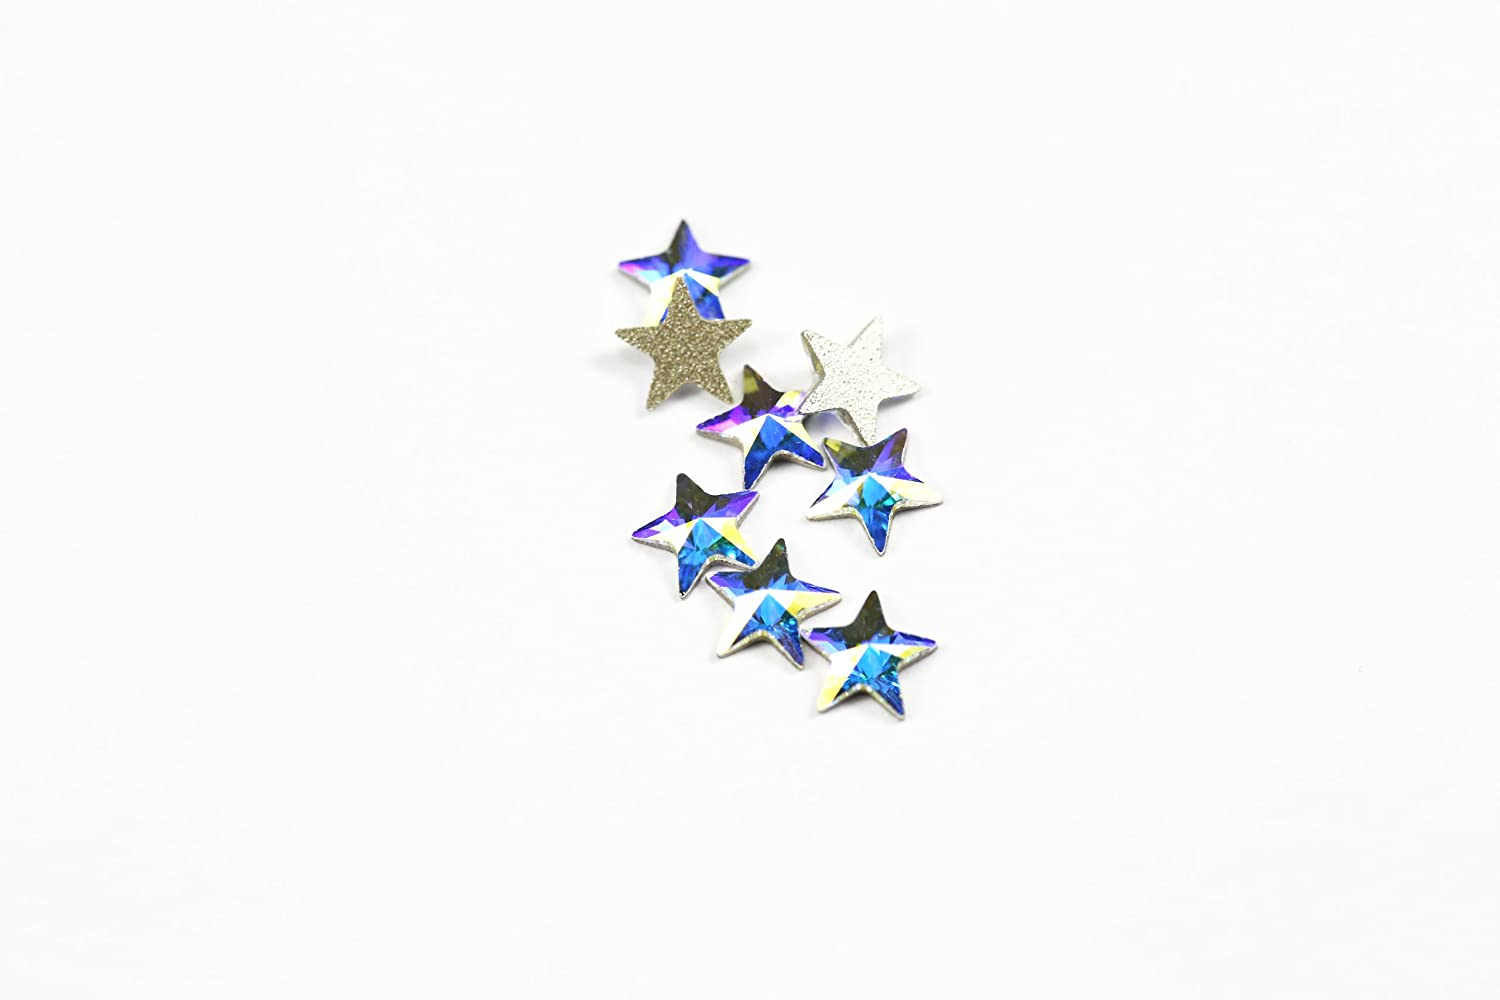 Swarovski Crystals Star Flat Back Article 2816 - Small Pack-Crystal Ab-5Mm-8 Swarovski Element